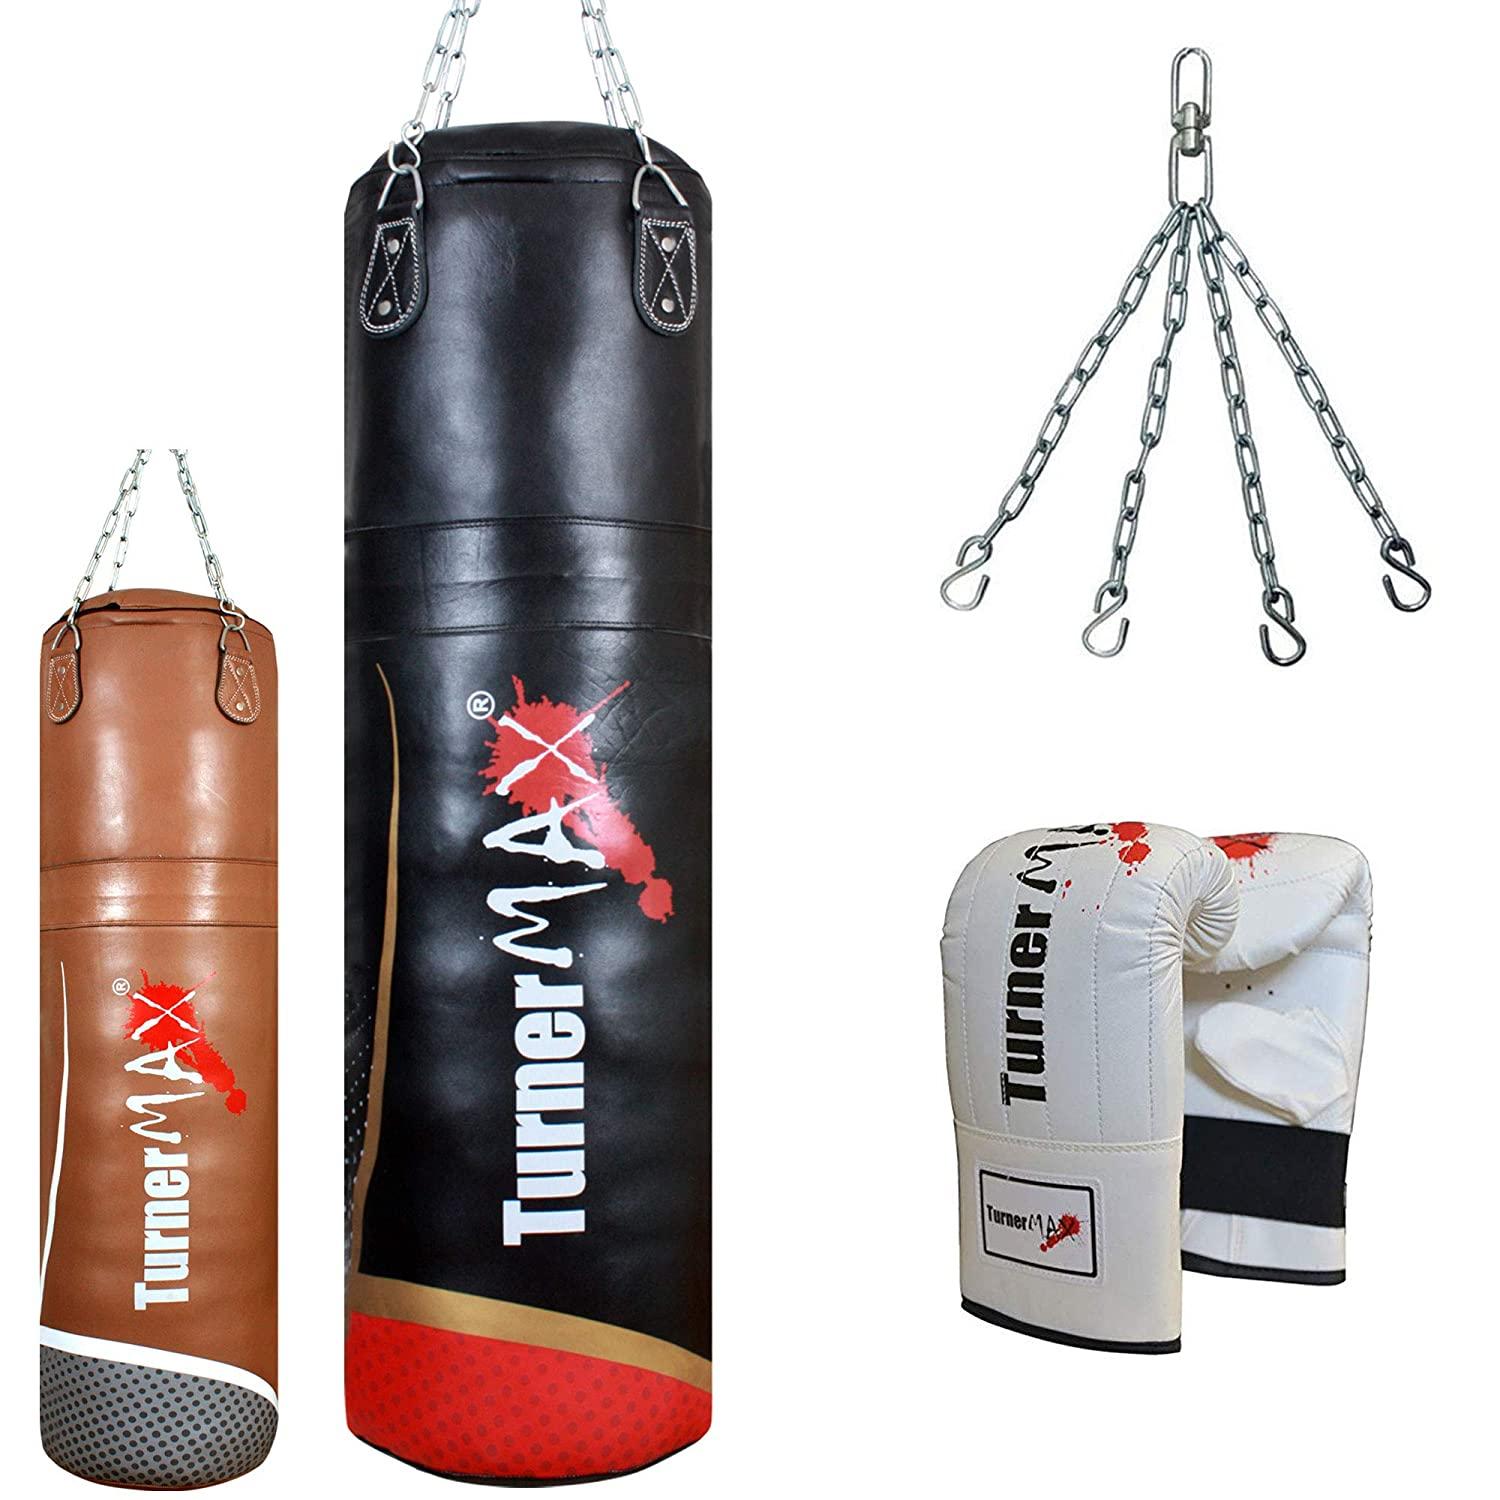 TurnerMAX Genuine Leather Heavy Punch Bag Gym Workout Training Punching Kick Boxing Punchbags with Chain and Gloves